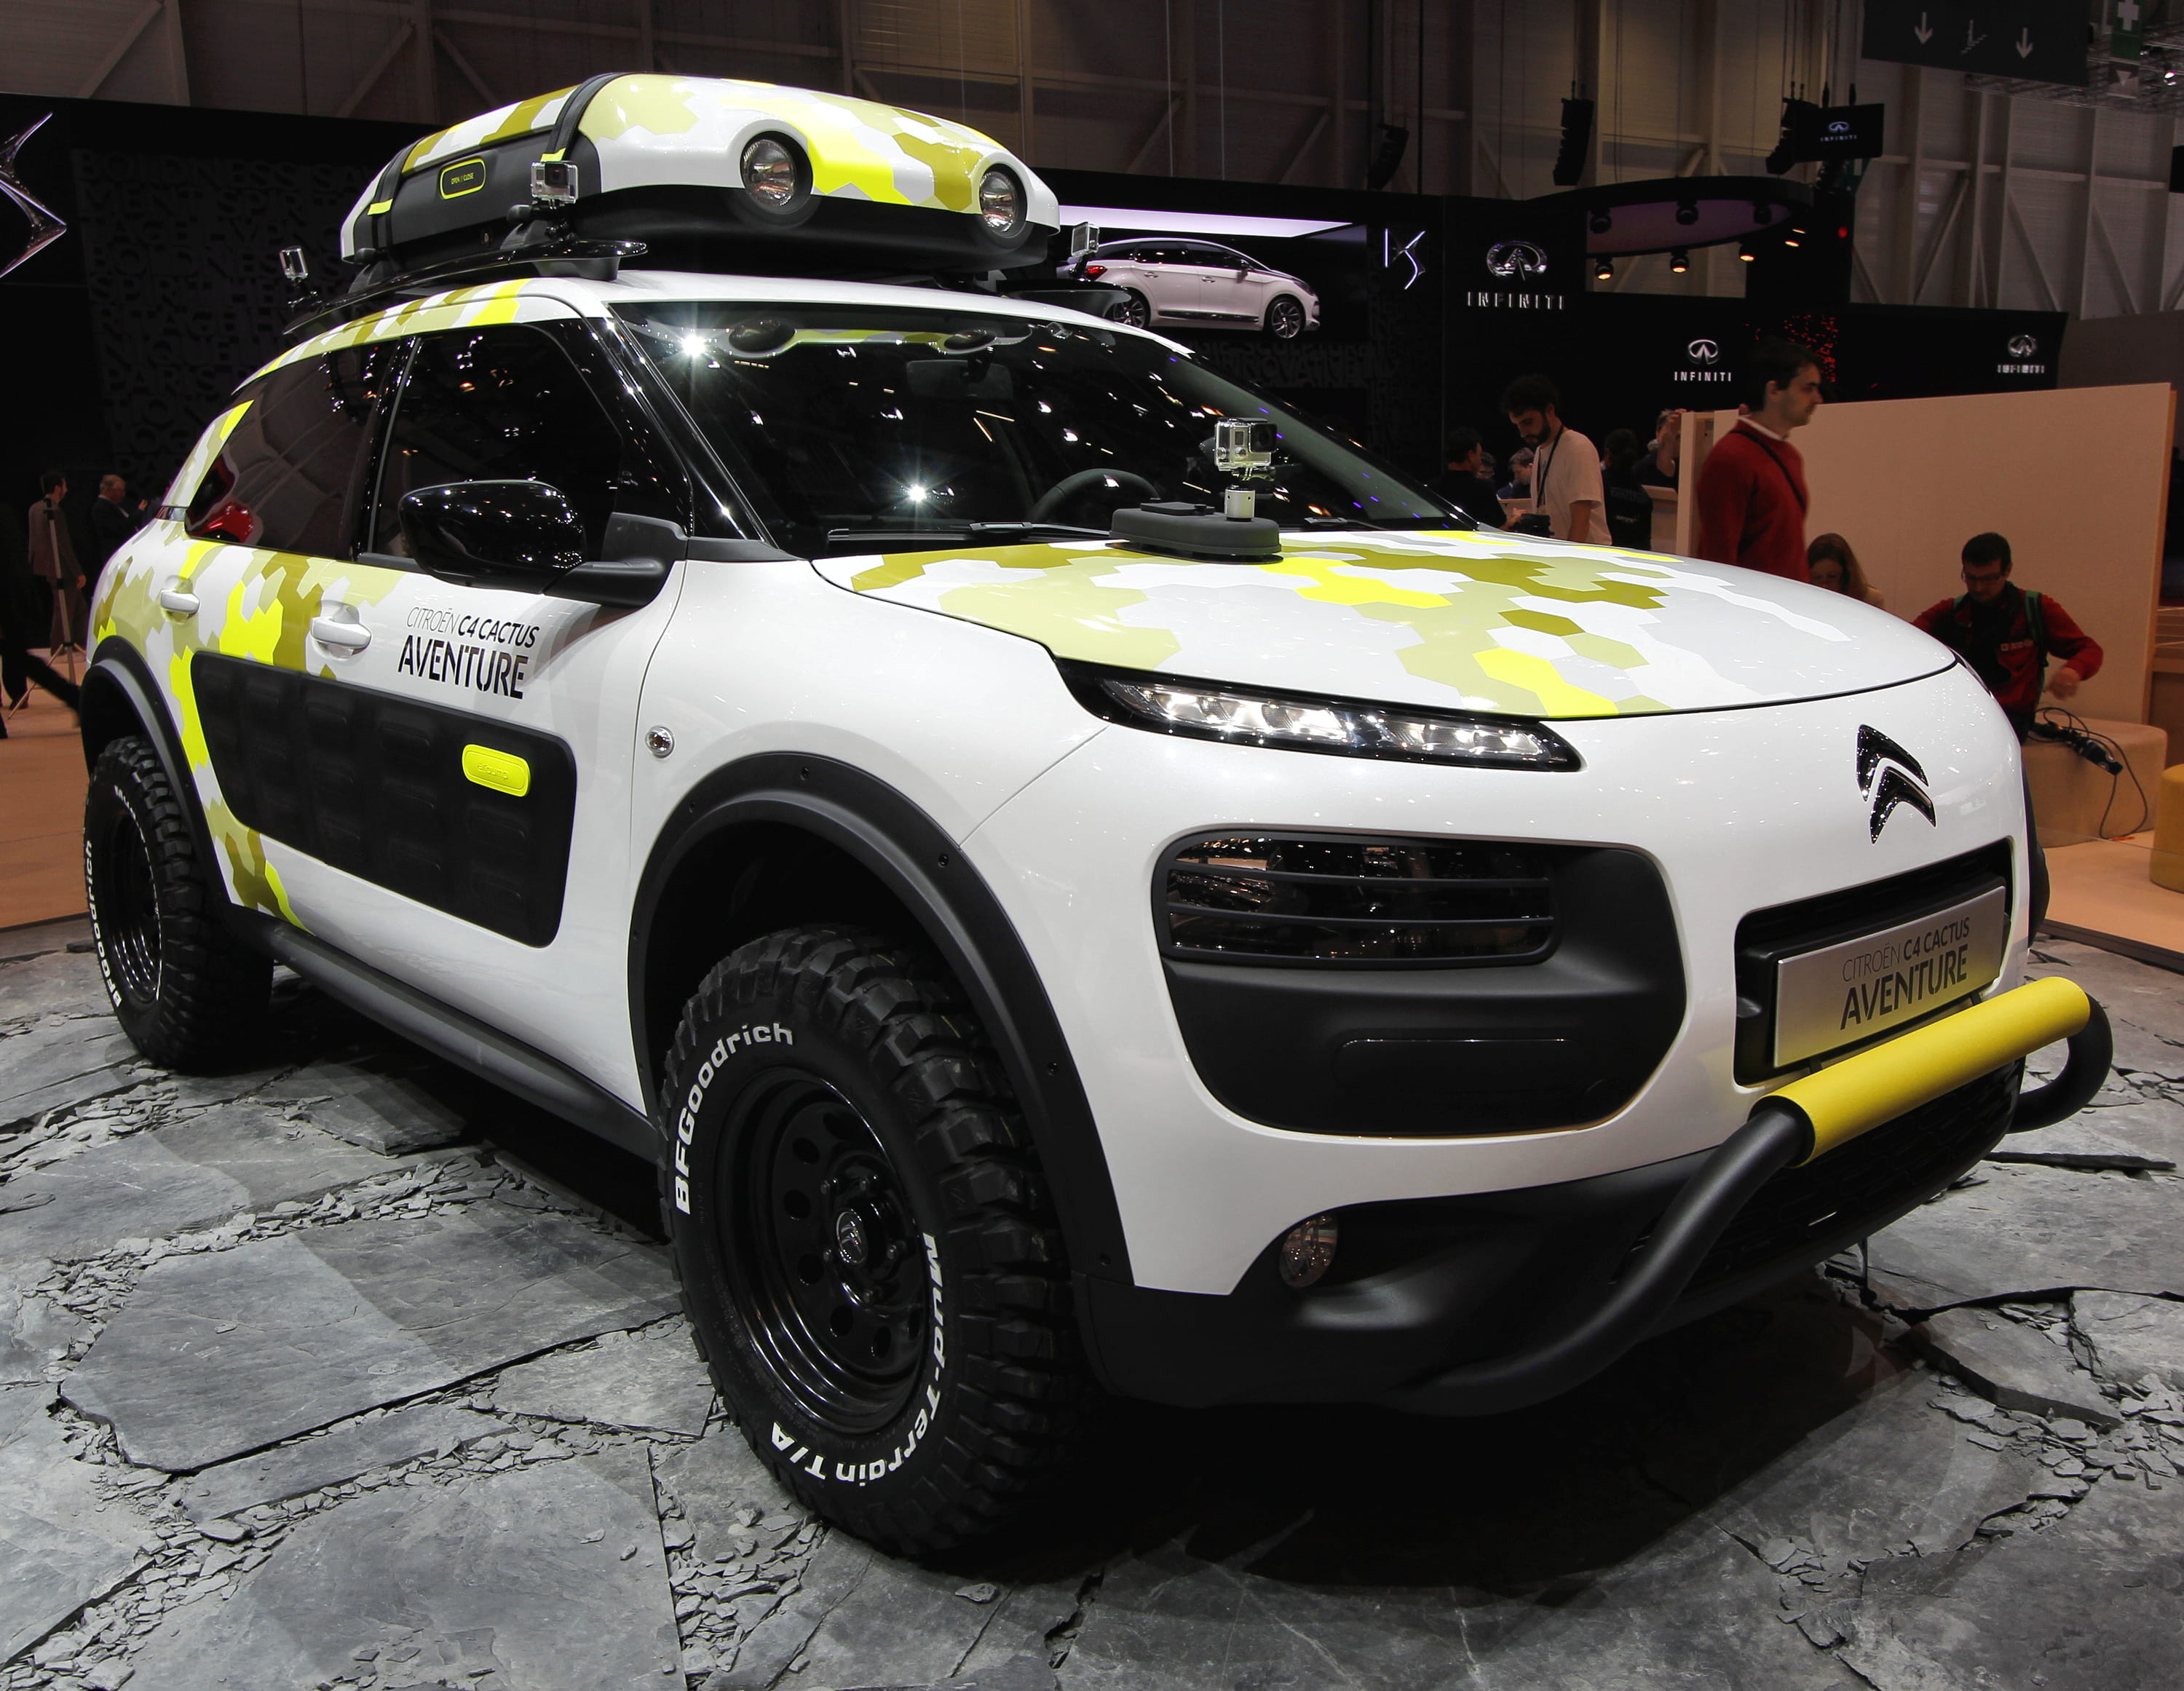 citroen c4 cactus aventure avant salon de gen ve 2014 les nouveaut s fran aises linternaute. Black Bedroom Furniture Sets. Home Design Ideas